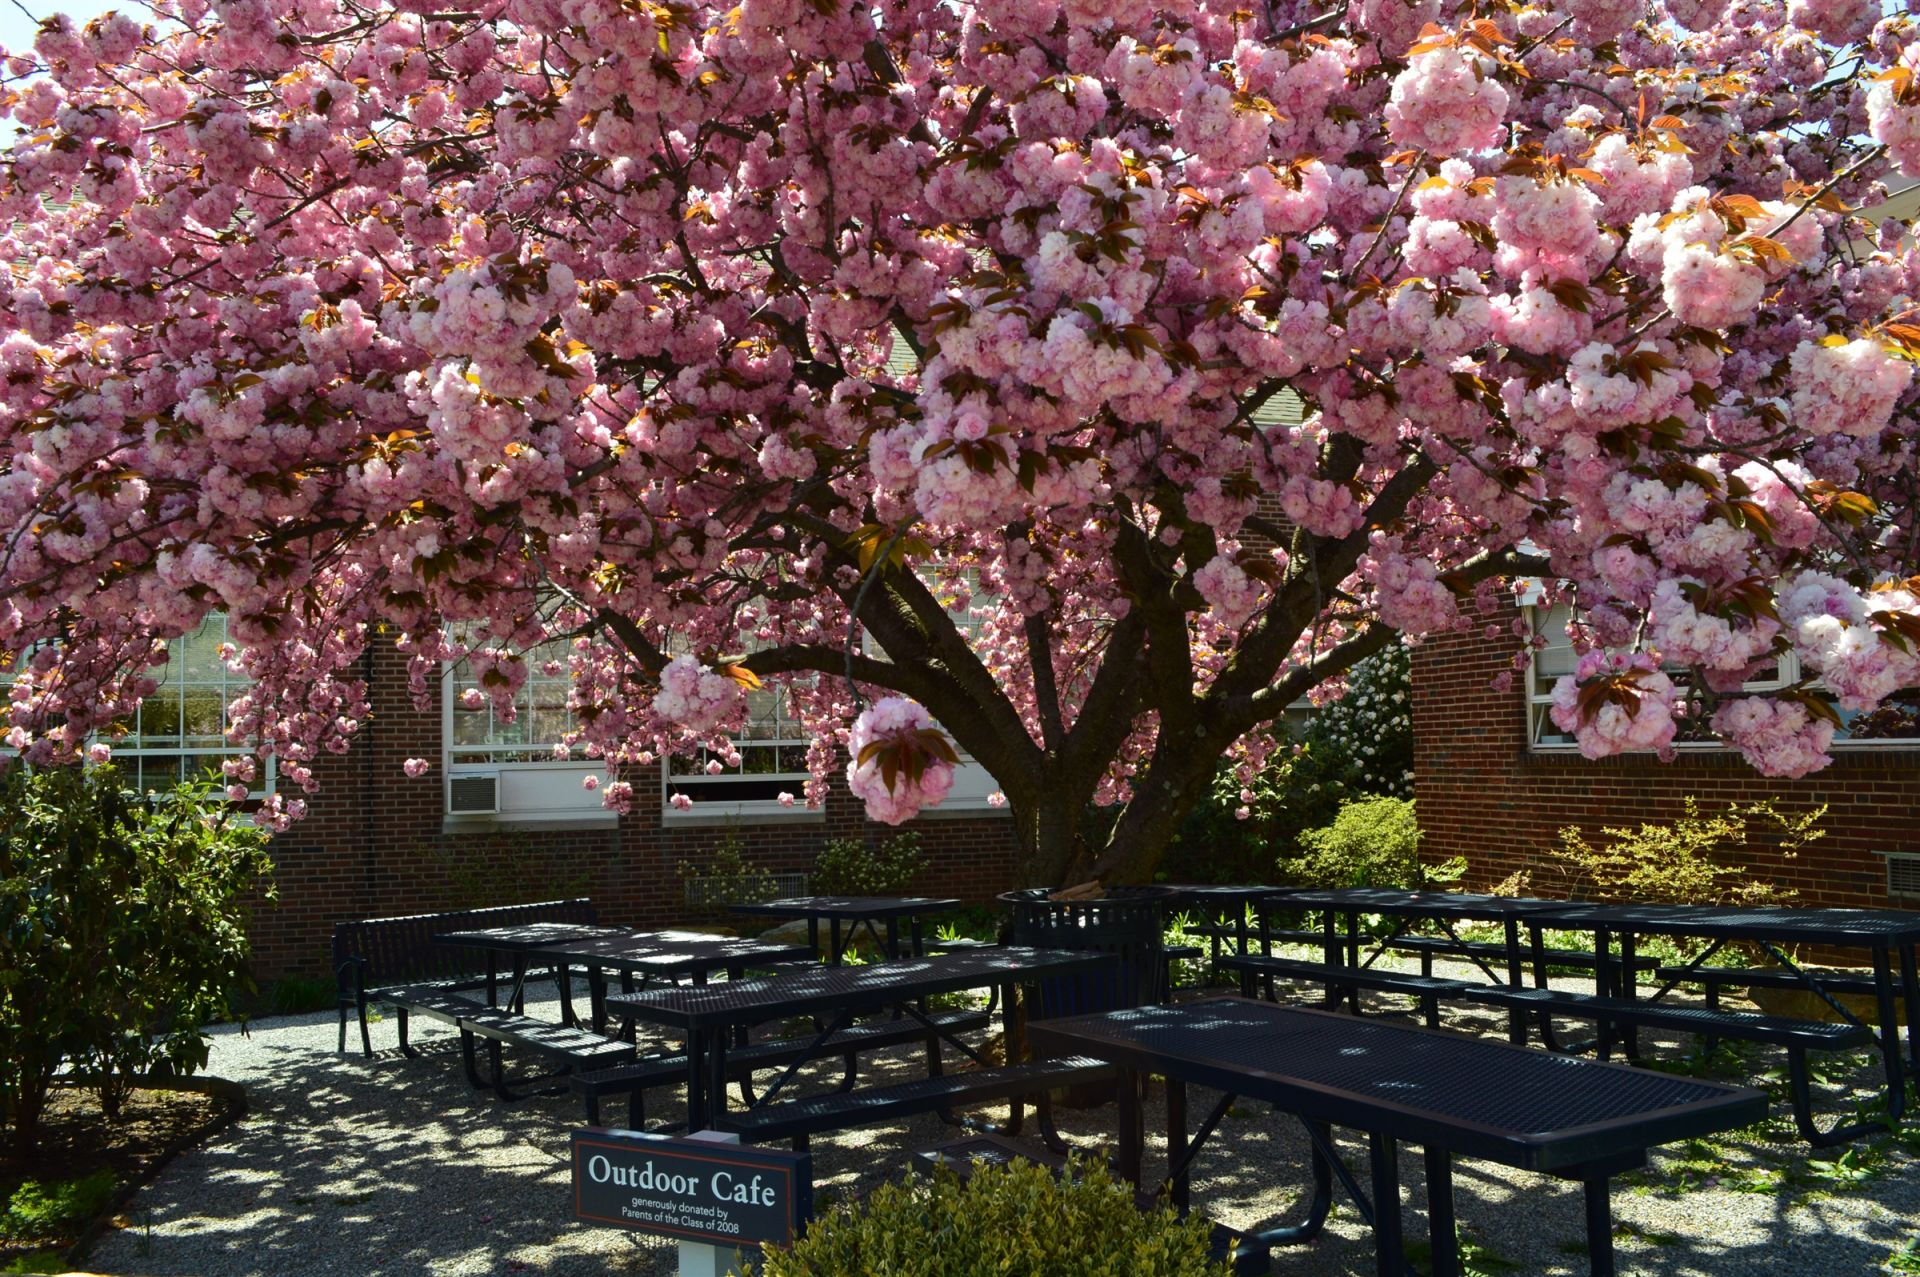 The outdoor picnic area provides a beautiful outdoor setting for seniors to eat lunch and for classes to take place.